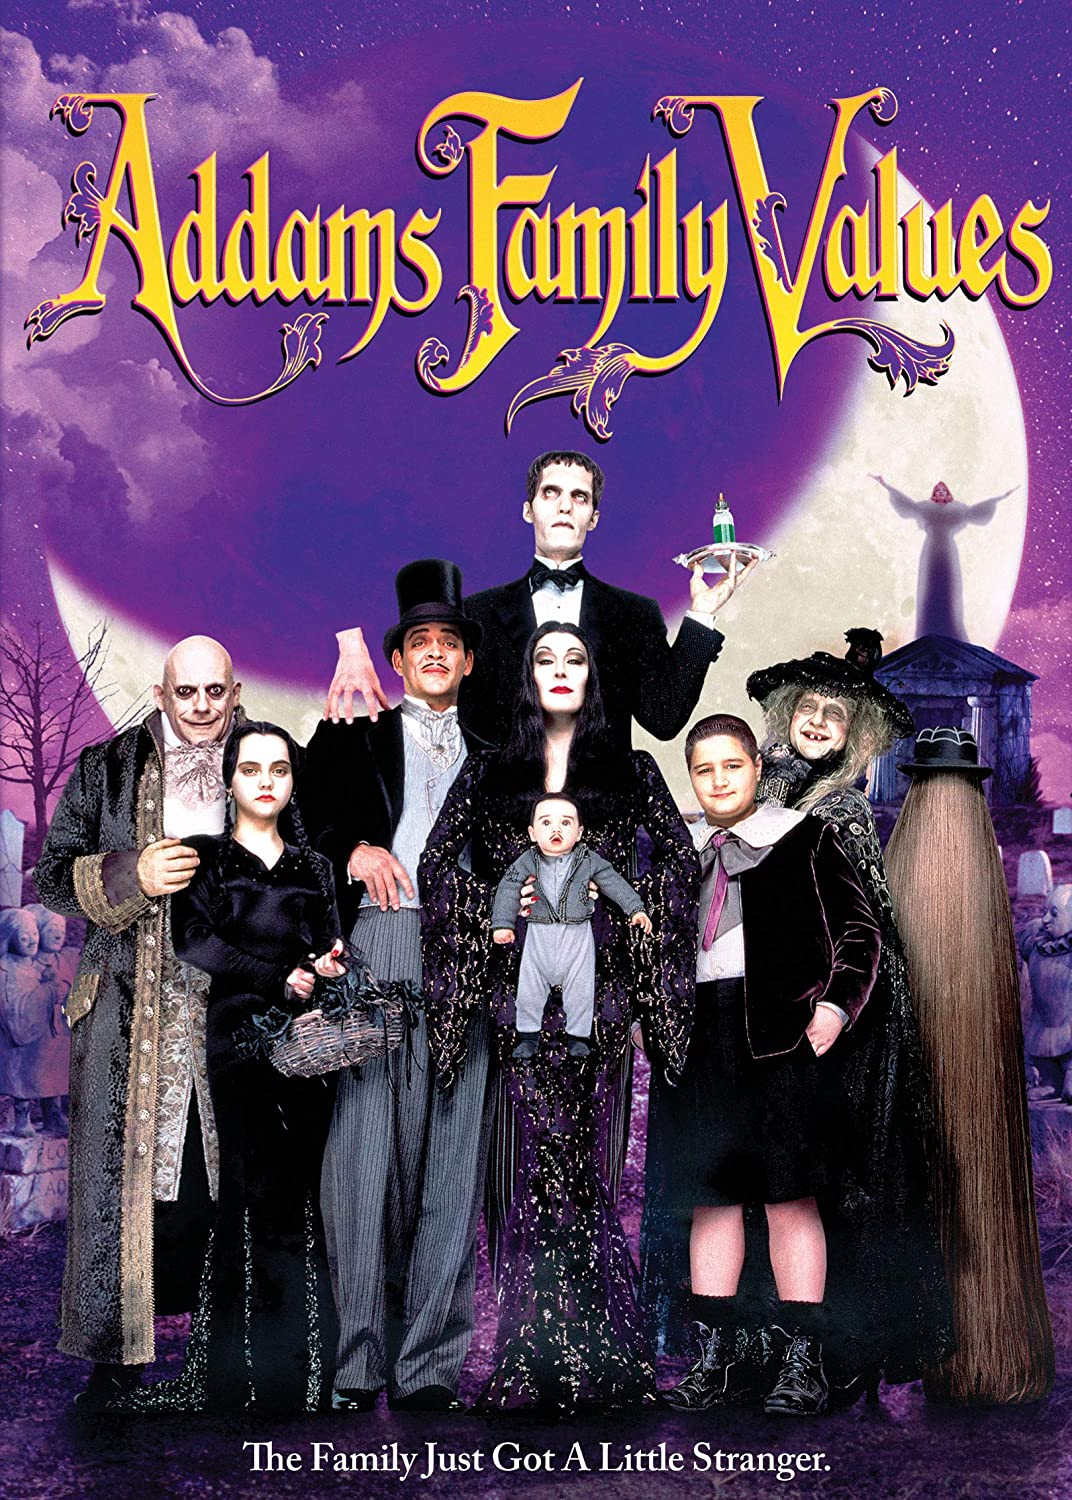 Addams Family Values [Reino Unido] [DVD]: Amazon.es: Cine y Series TV